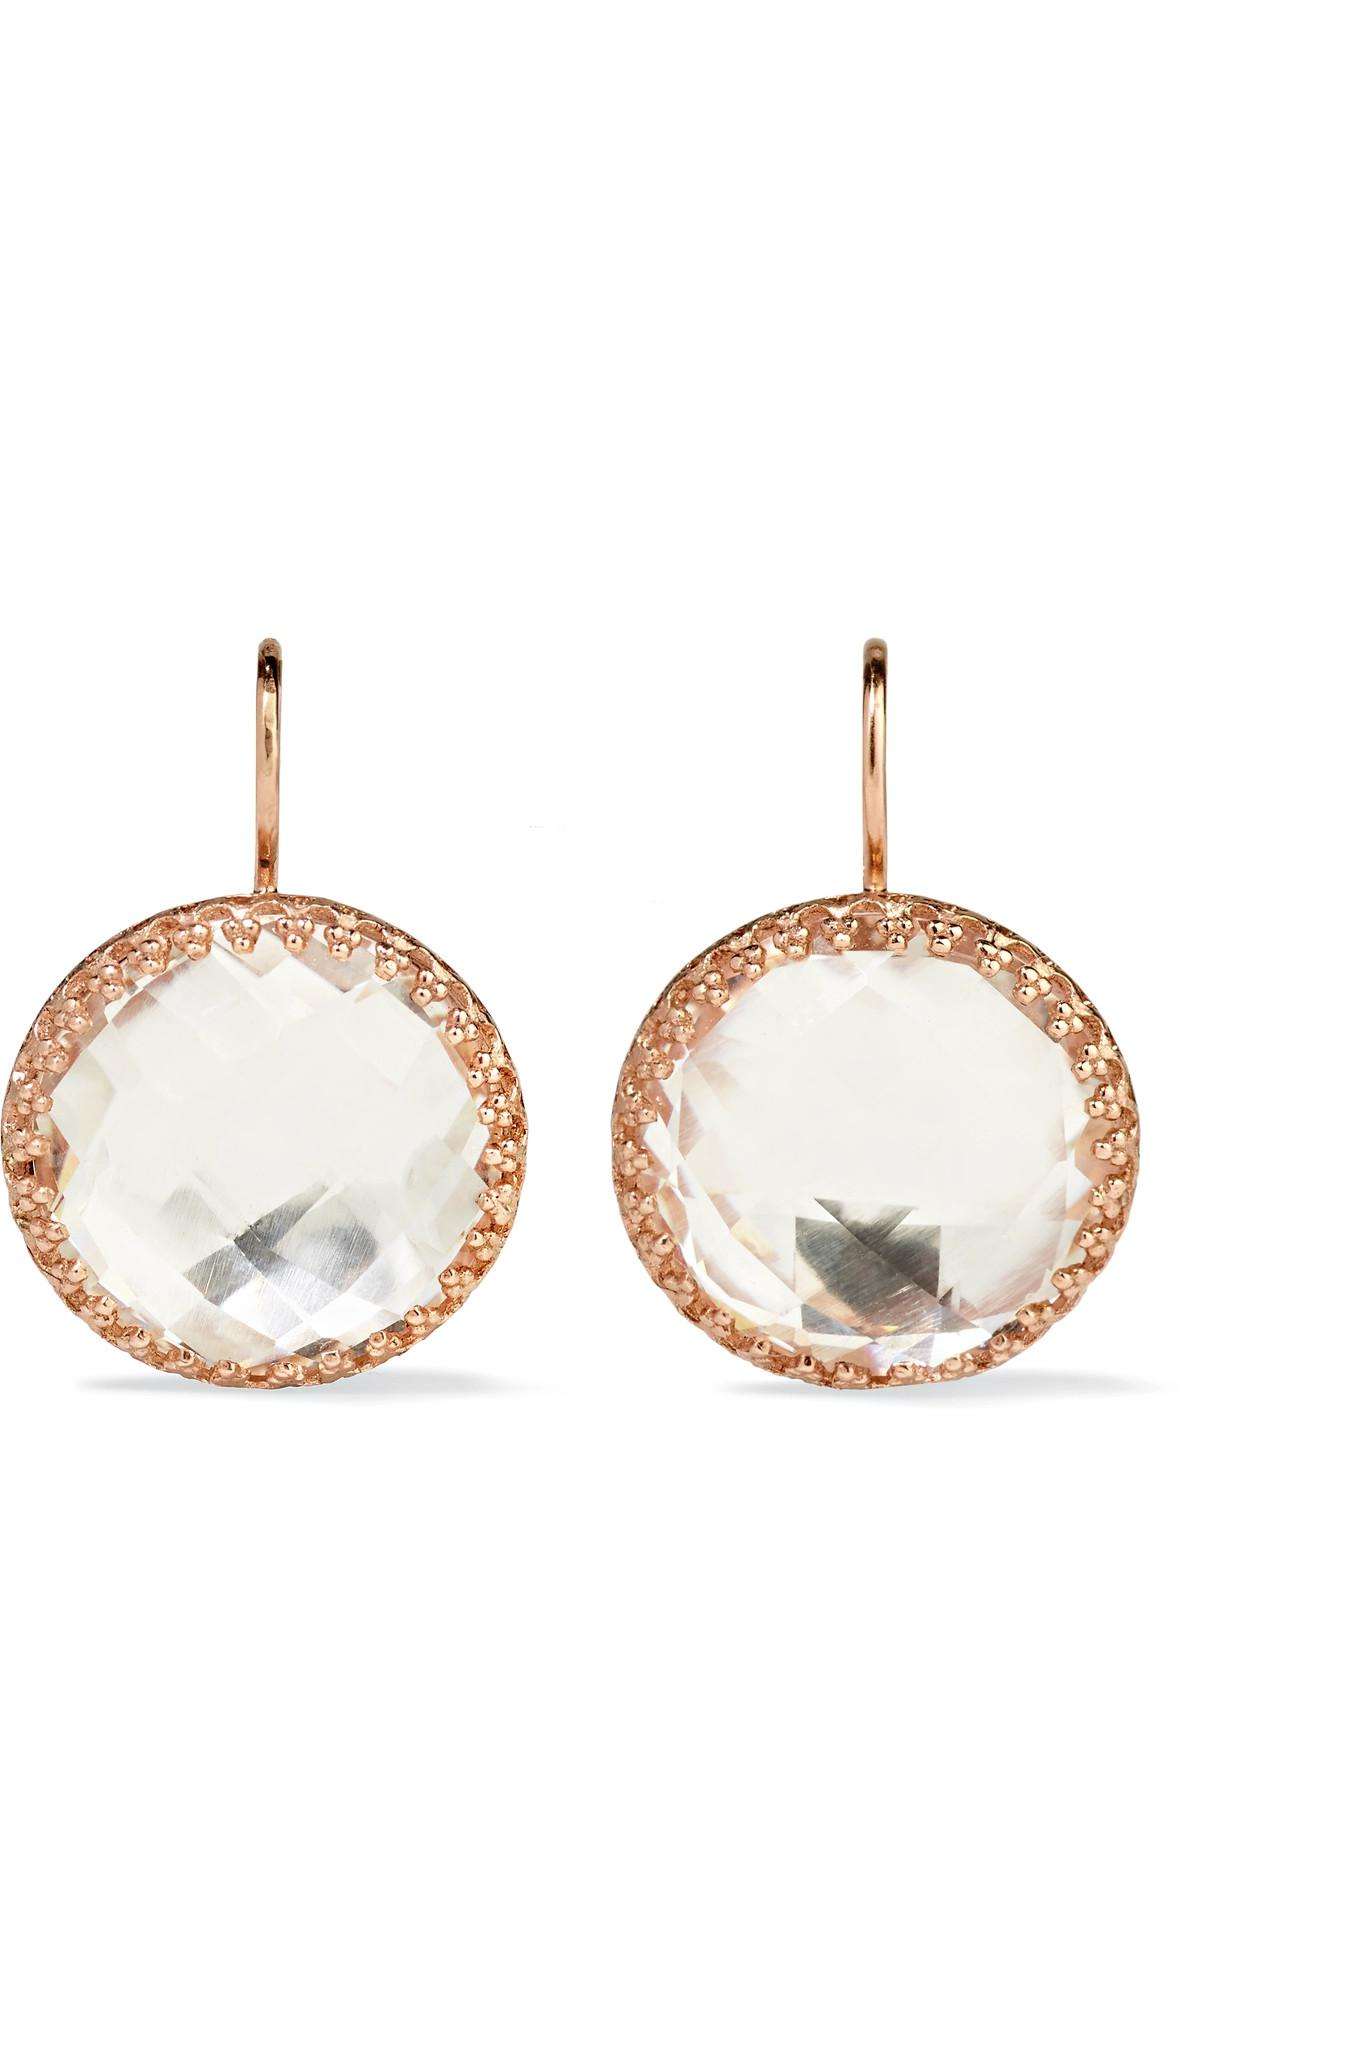 Larkspur & Hawk Olivia Button Rose Gold-dipped Topaz Earrings P1VRXgwMk2